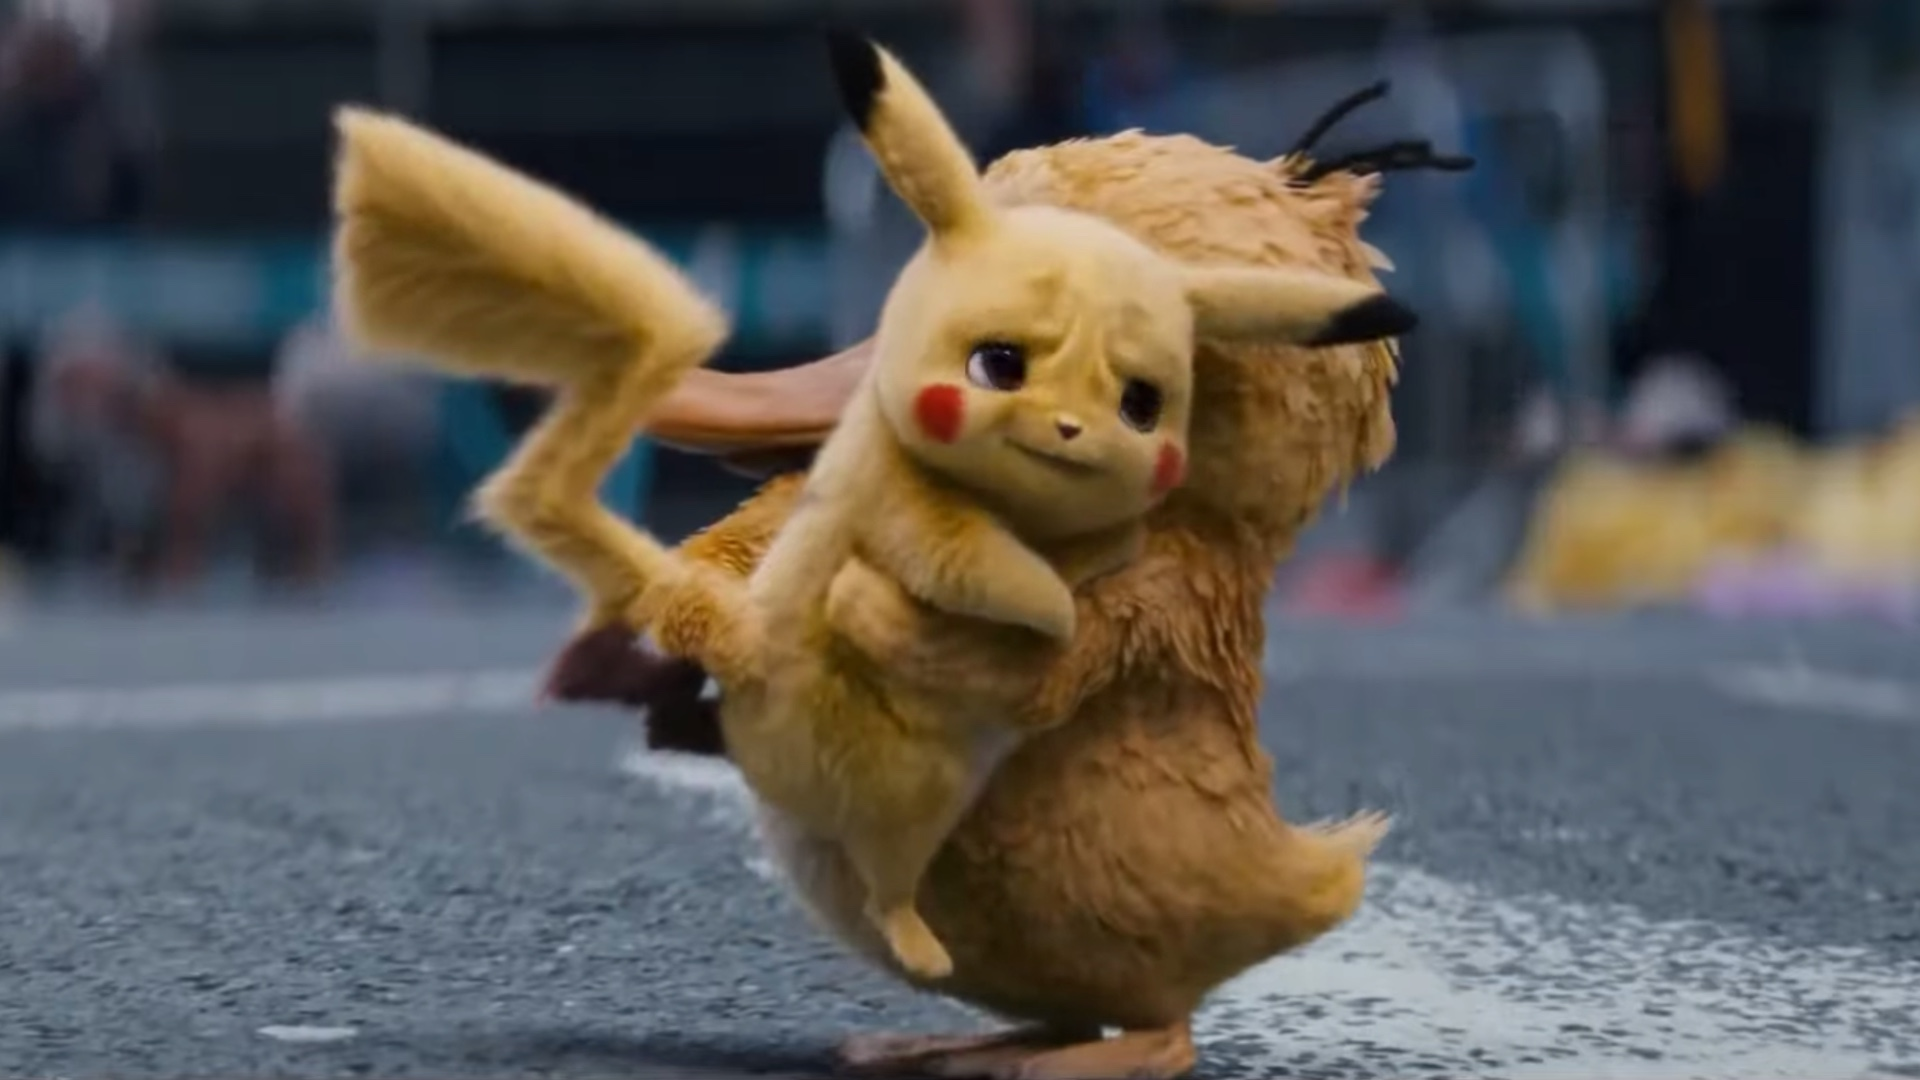 heartwarming-new-trailer-for-detective-pikachu-tugs-on-the-heart-strings-and-features-lots-of-new-footage-social.jpg